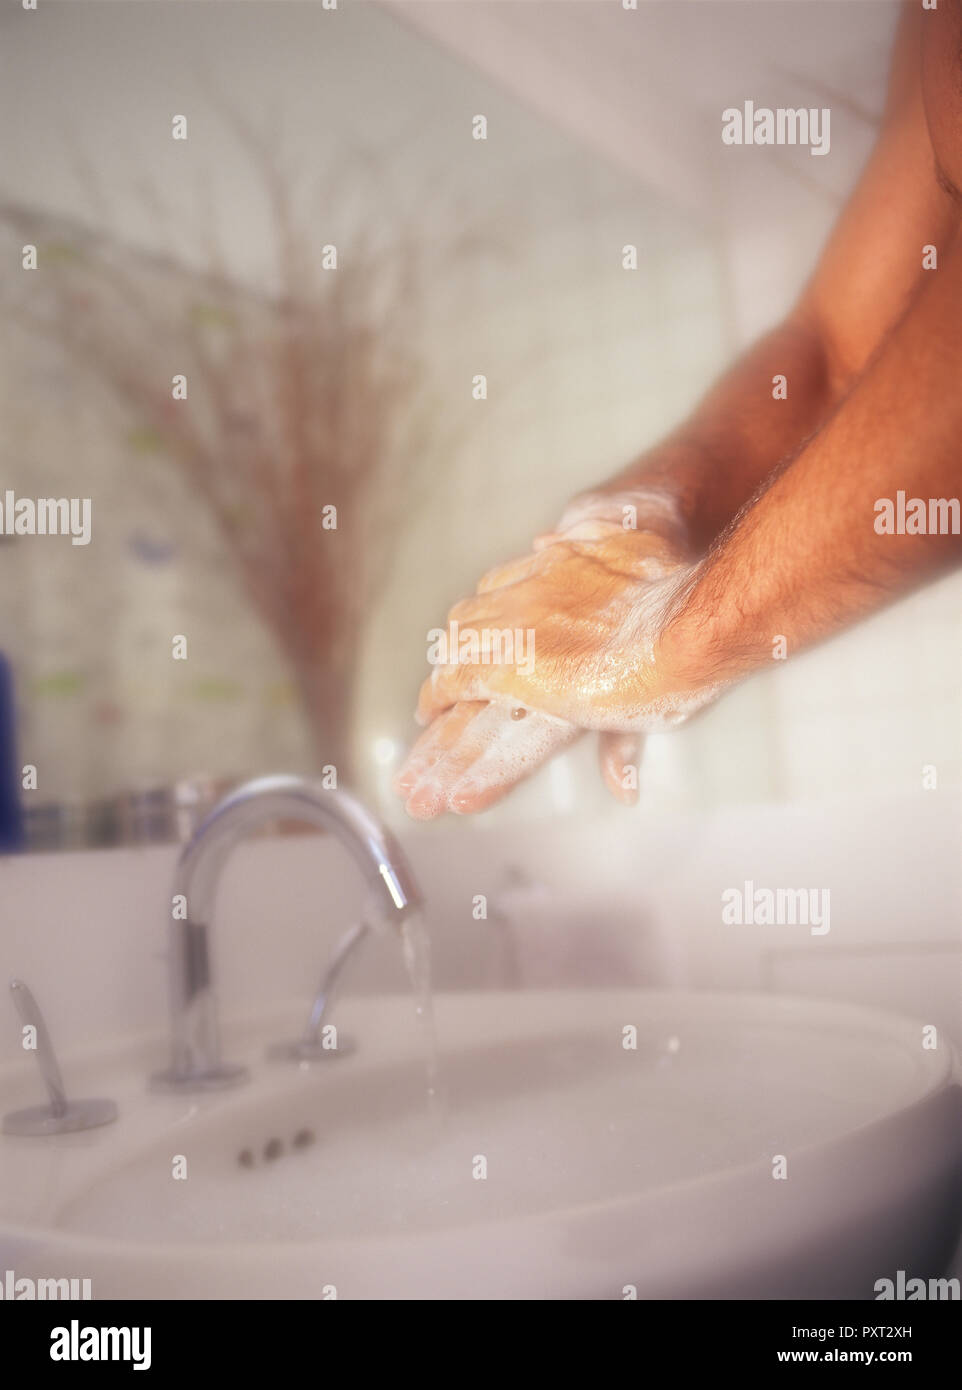 Man scrubbing and washing hands with vigor against a soft background in bathroom - Stock Image